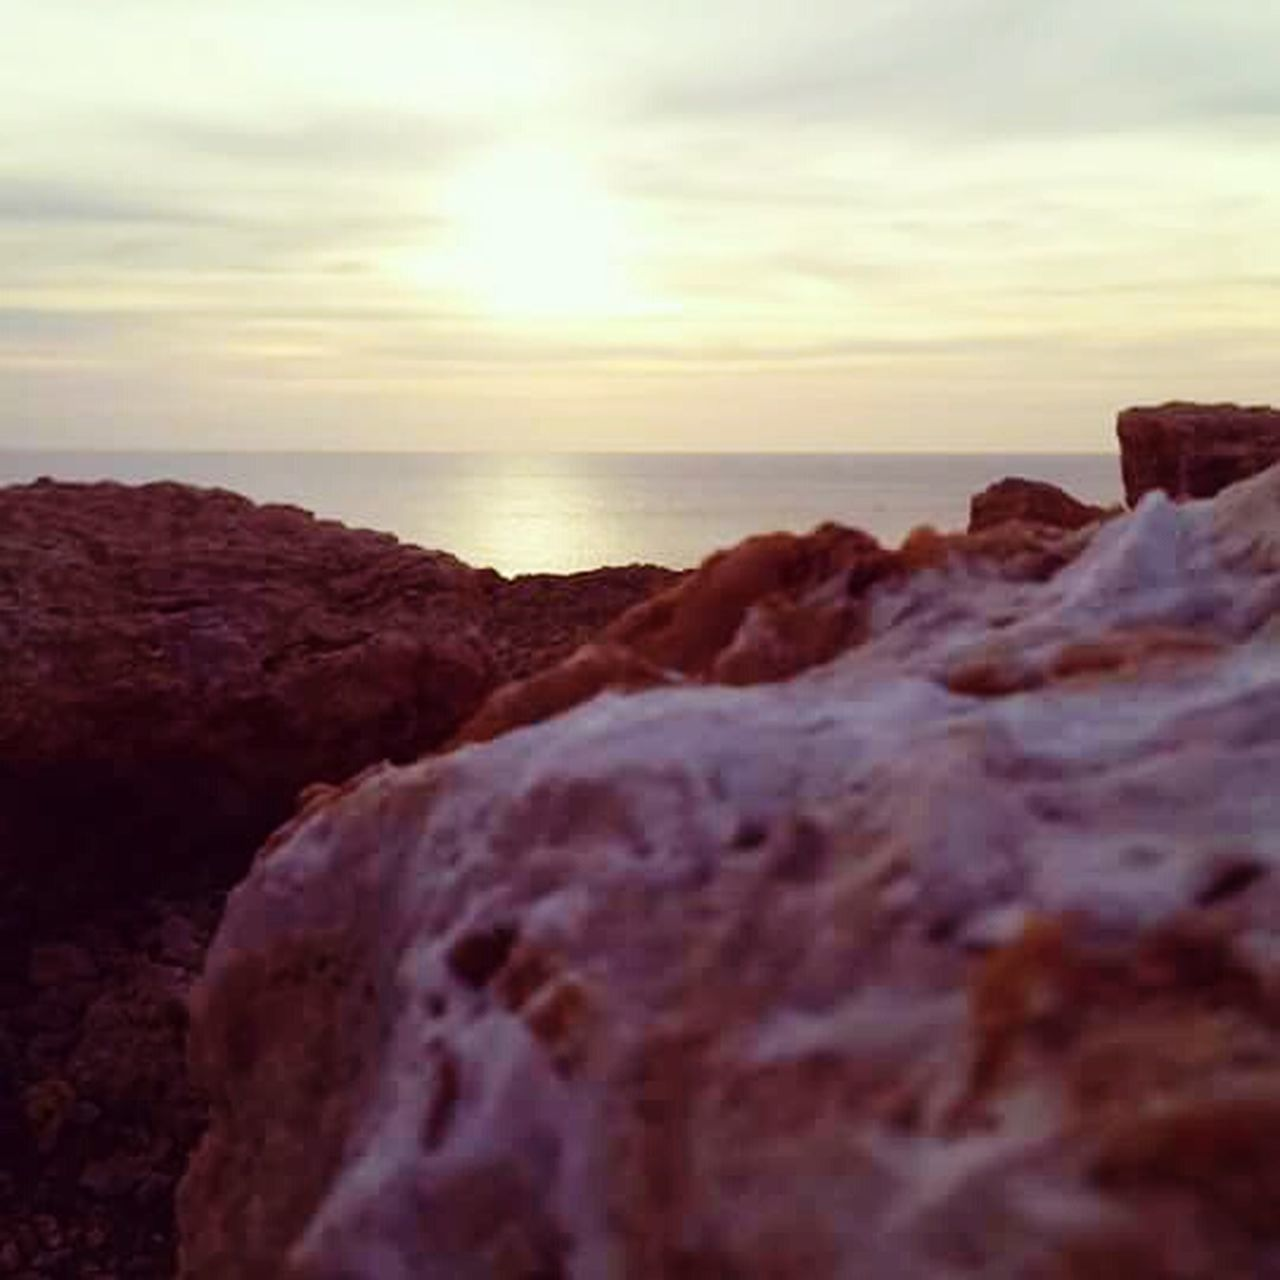 rock - object, sea, nature, scenics, sunset, beauty in nature, rock formation, geology, horizon over water, sky, tranquility, no people, beach, tranquil scene, water, sun, cliff, outdoors, travel destinations, wave, day